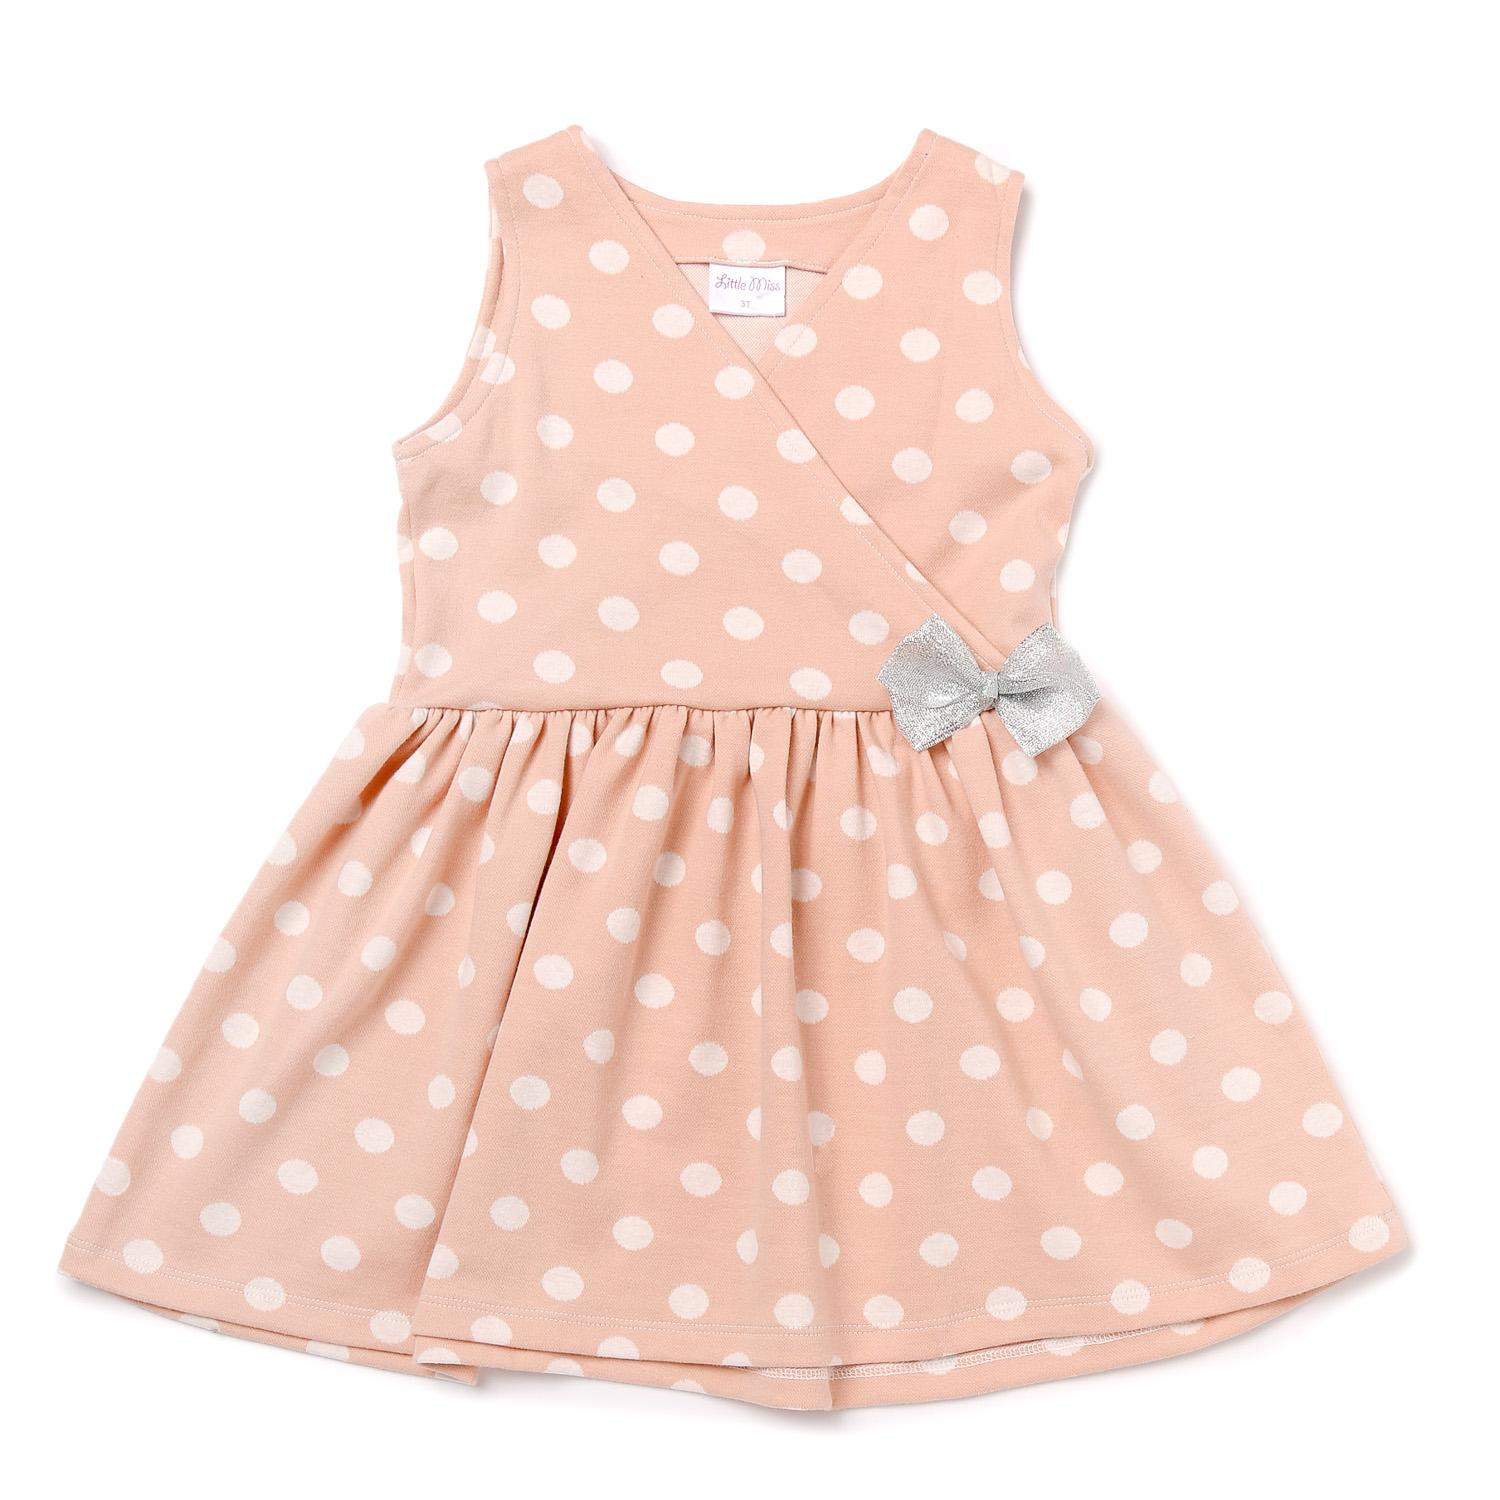 Girls Dresses for sale - Baby Dresses for Girls online brands ... 04be079a89ba